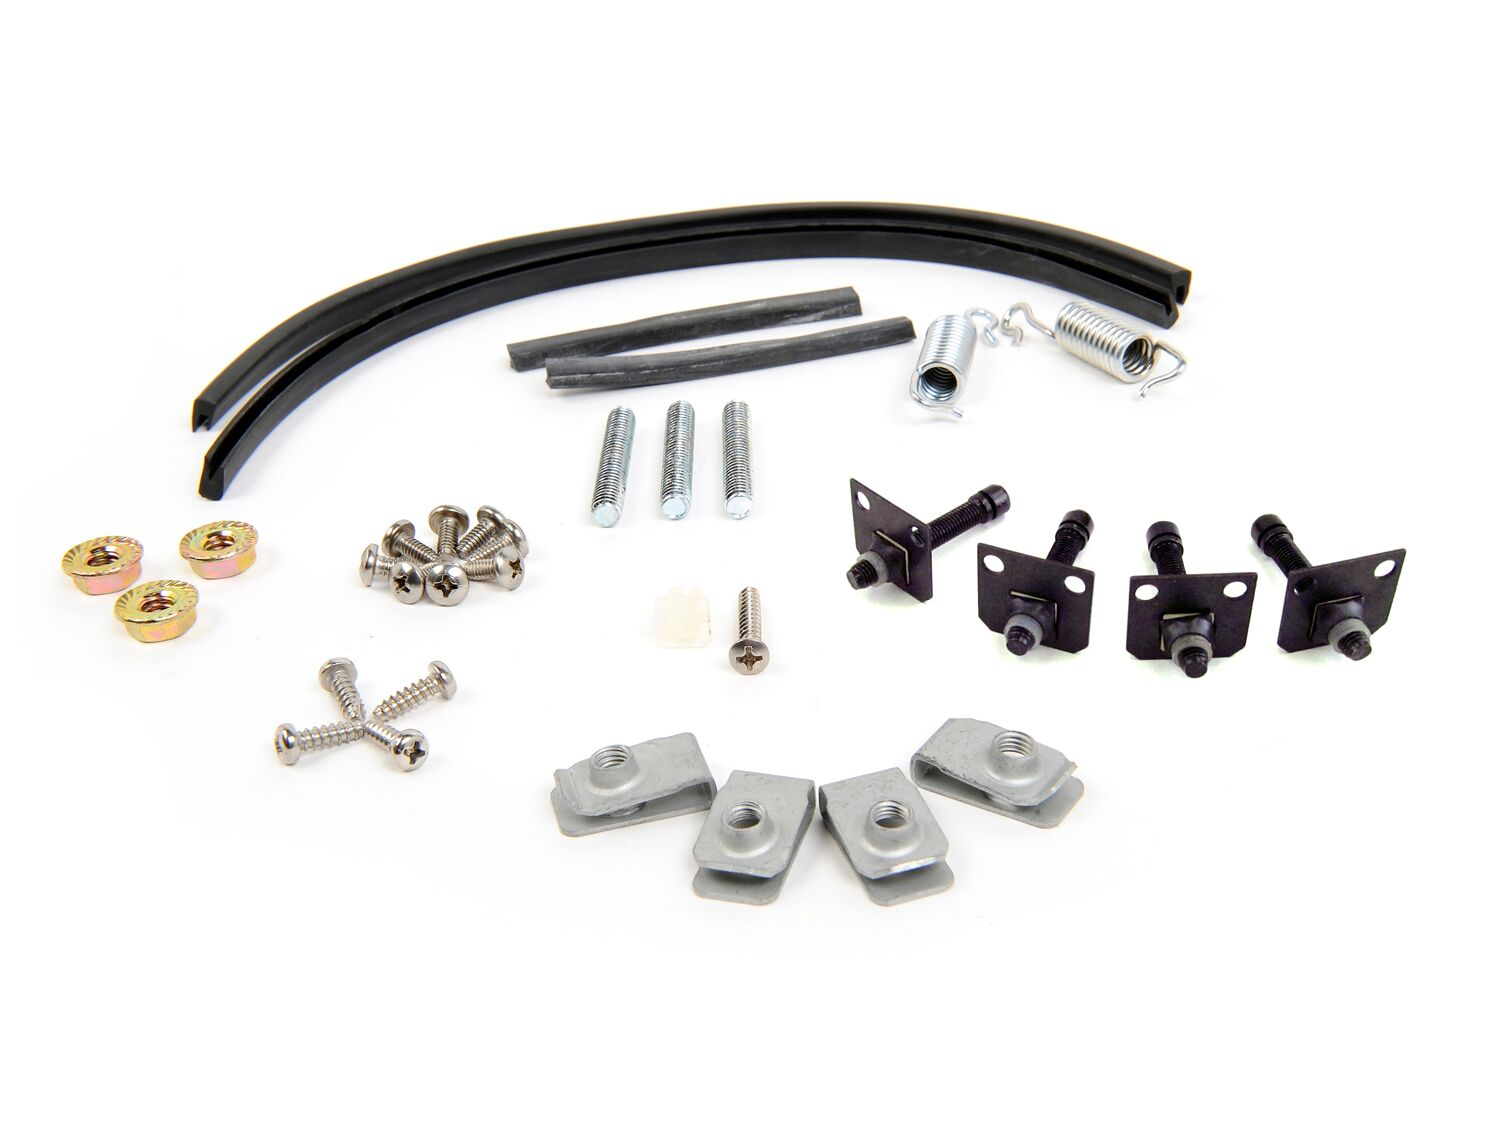 Headlight Assembly Hardware Kit